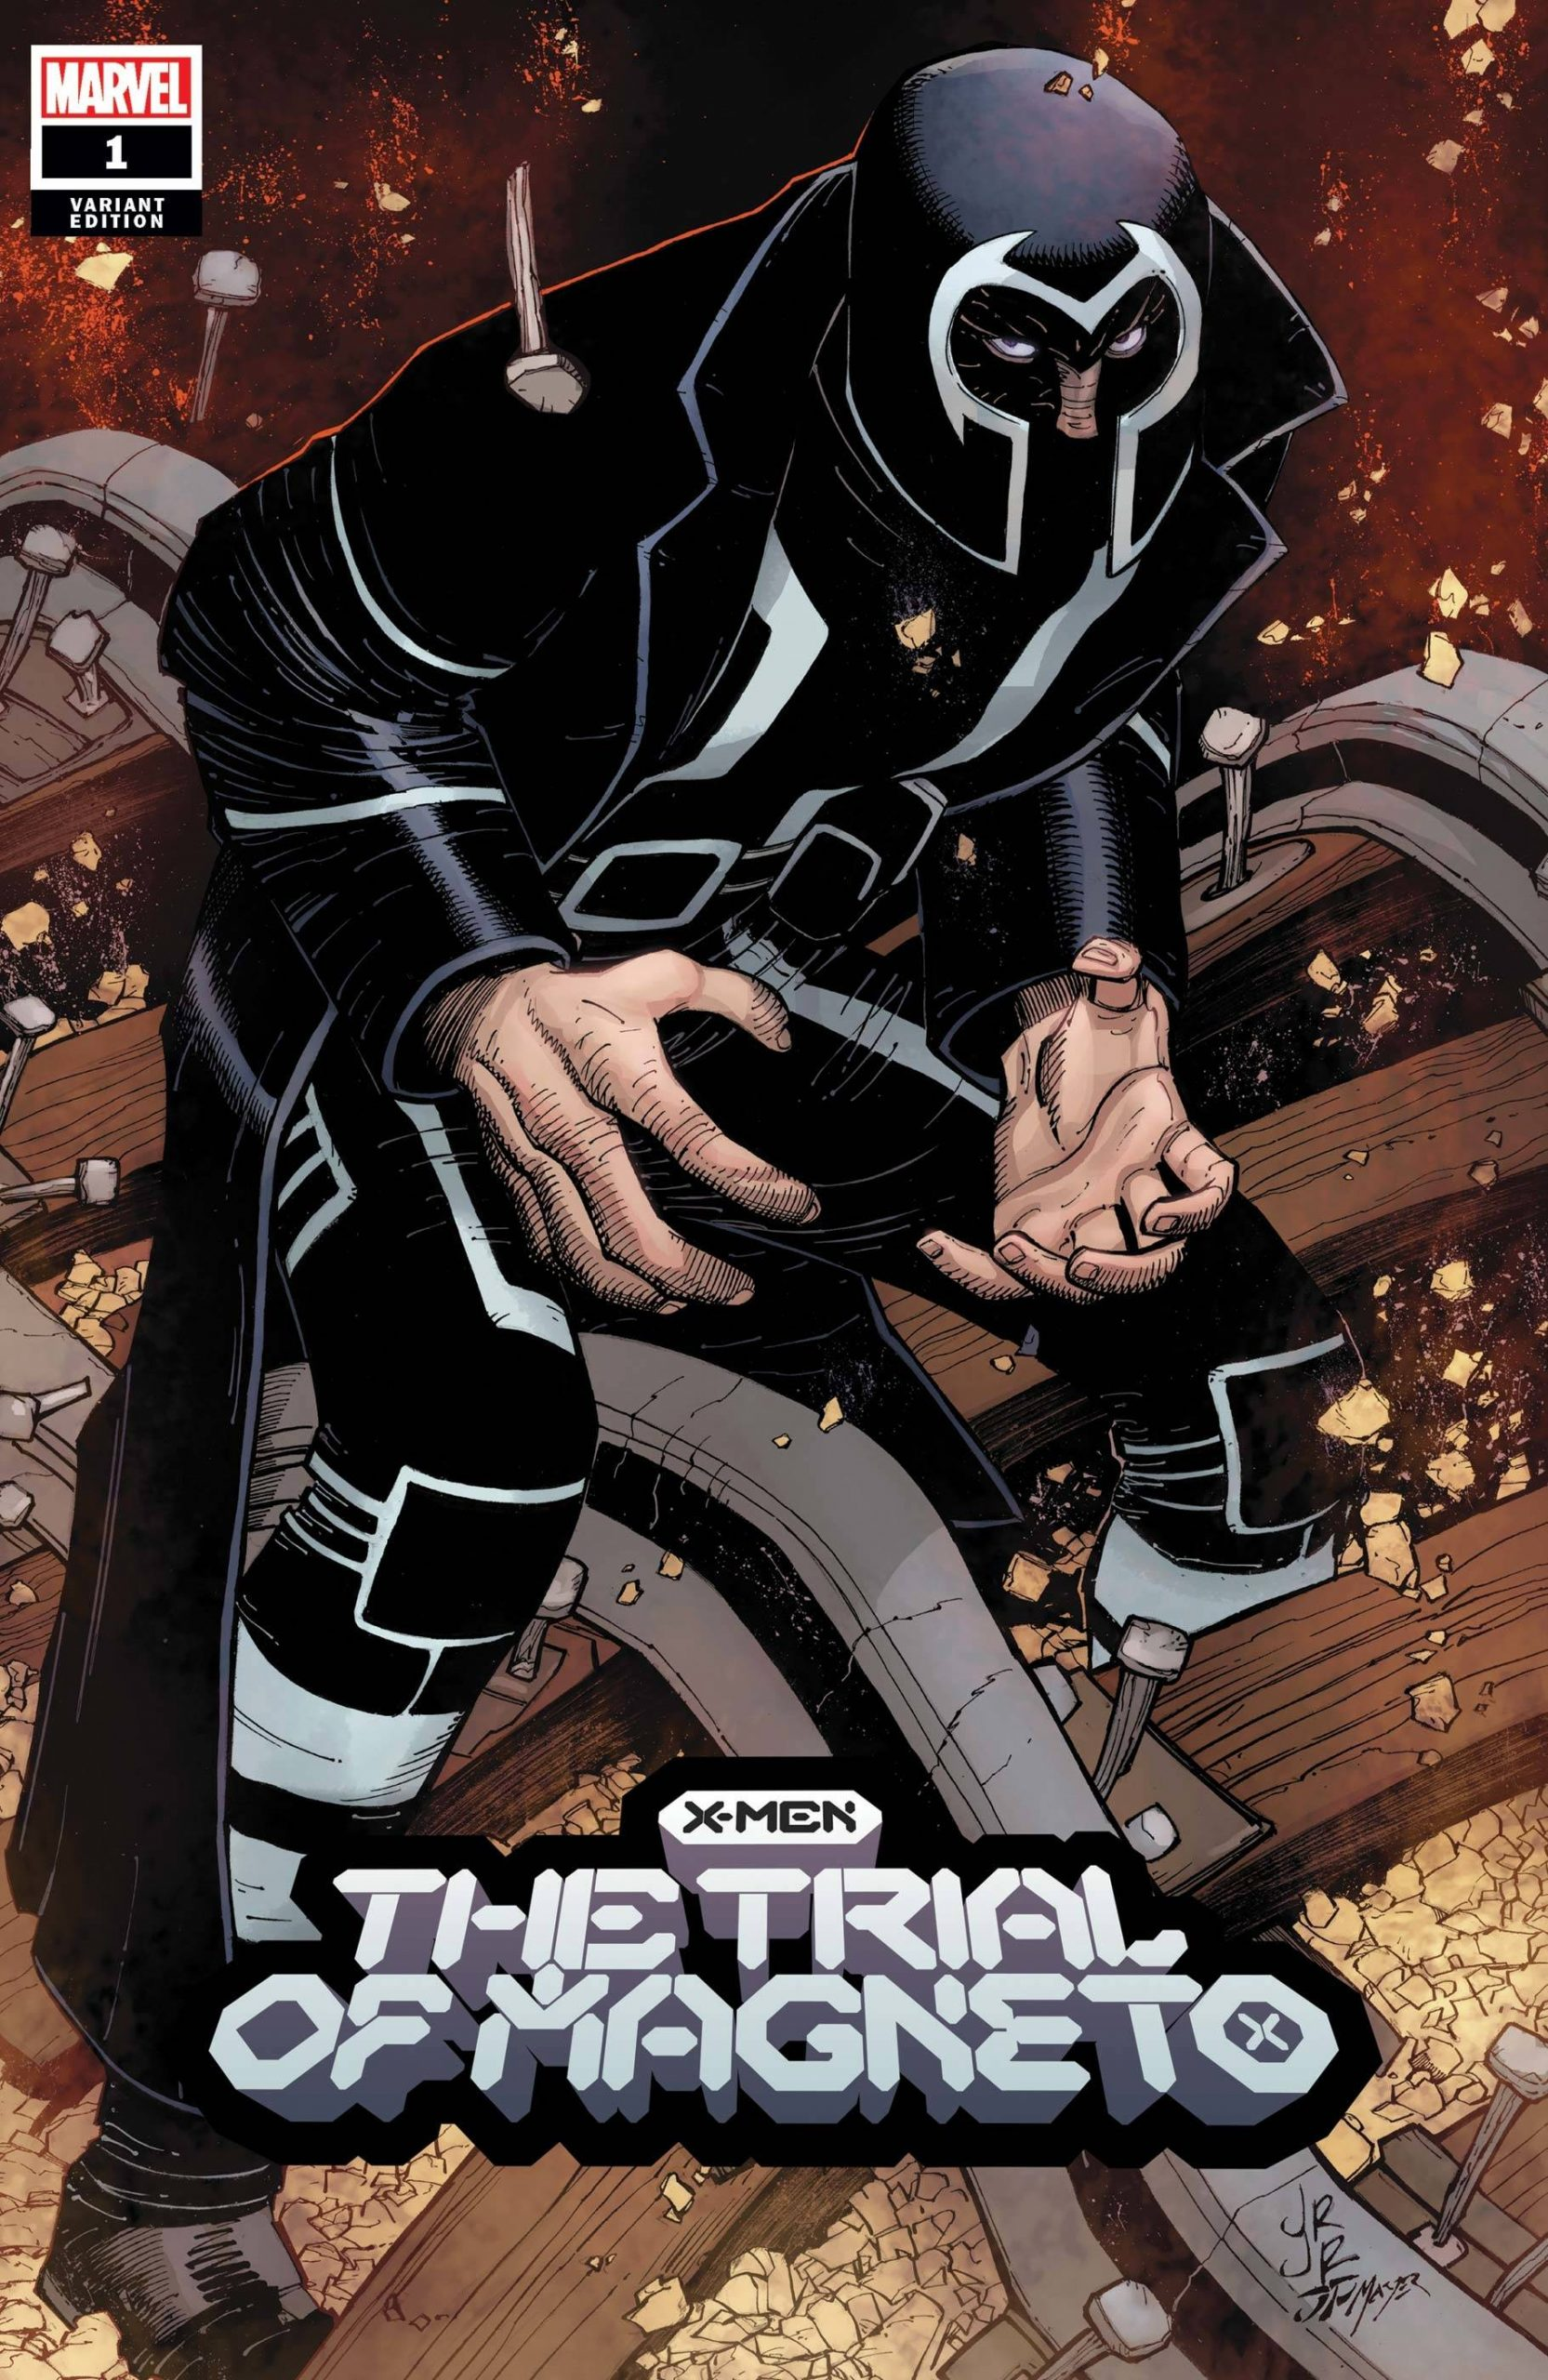 X-Men-The-Trial-of-Magneto-1-spoilers-0-6-scaled-1 X-Men-The-Trial-of-Magneto-1-spoilers-0-6-scaled-1